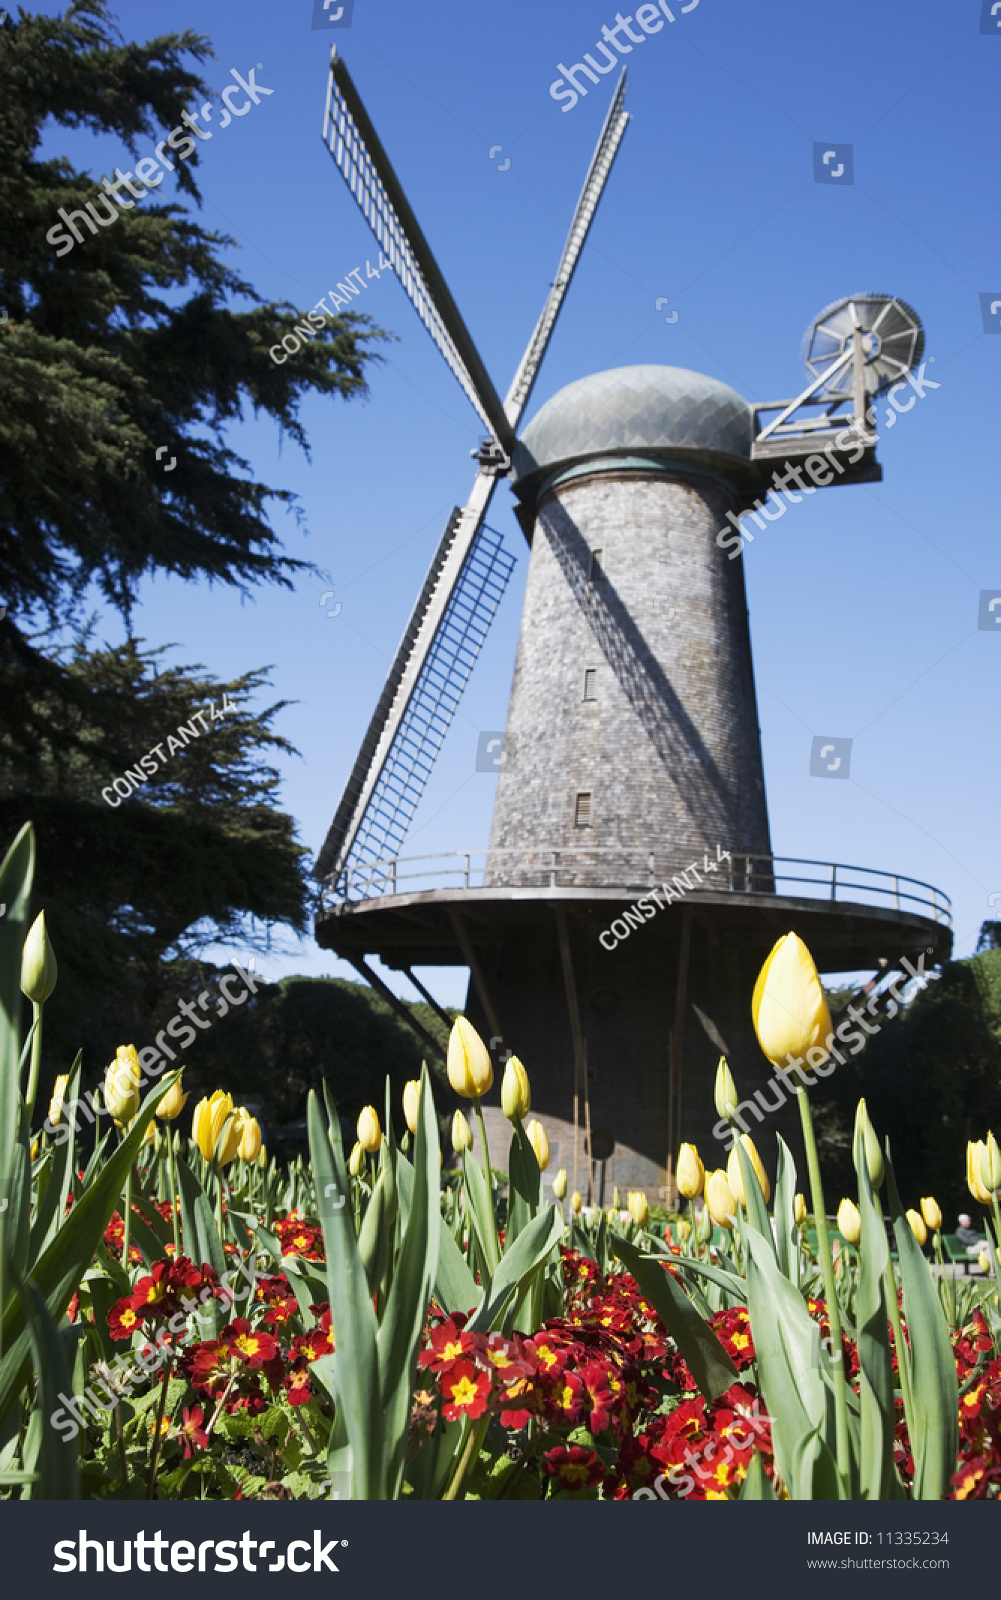 Historic Dutch Windmill At Queen Wilhelmina Tulip Garden In The Golden Gate Park San Francisco